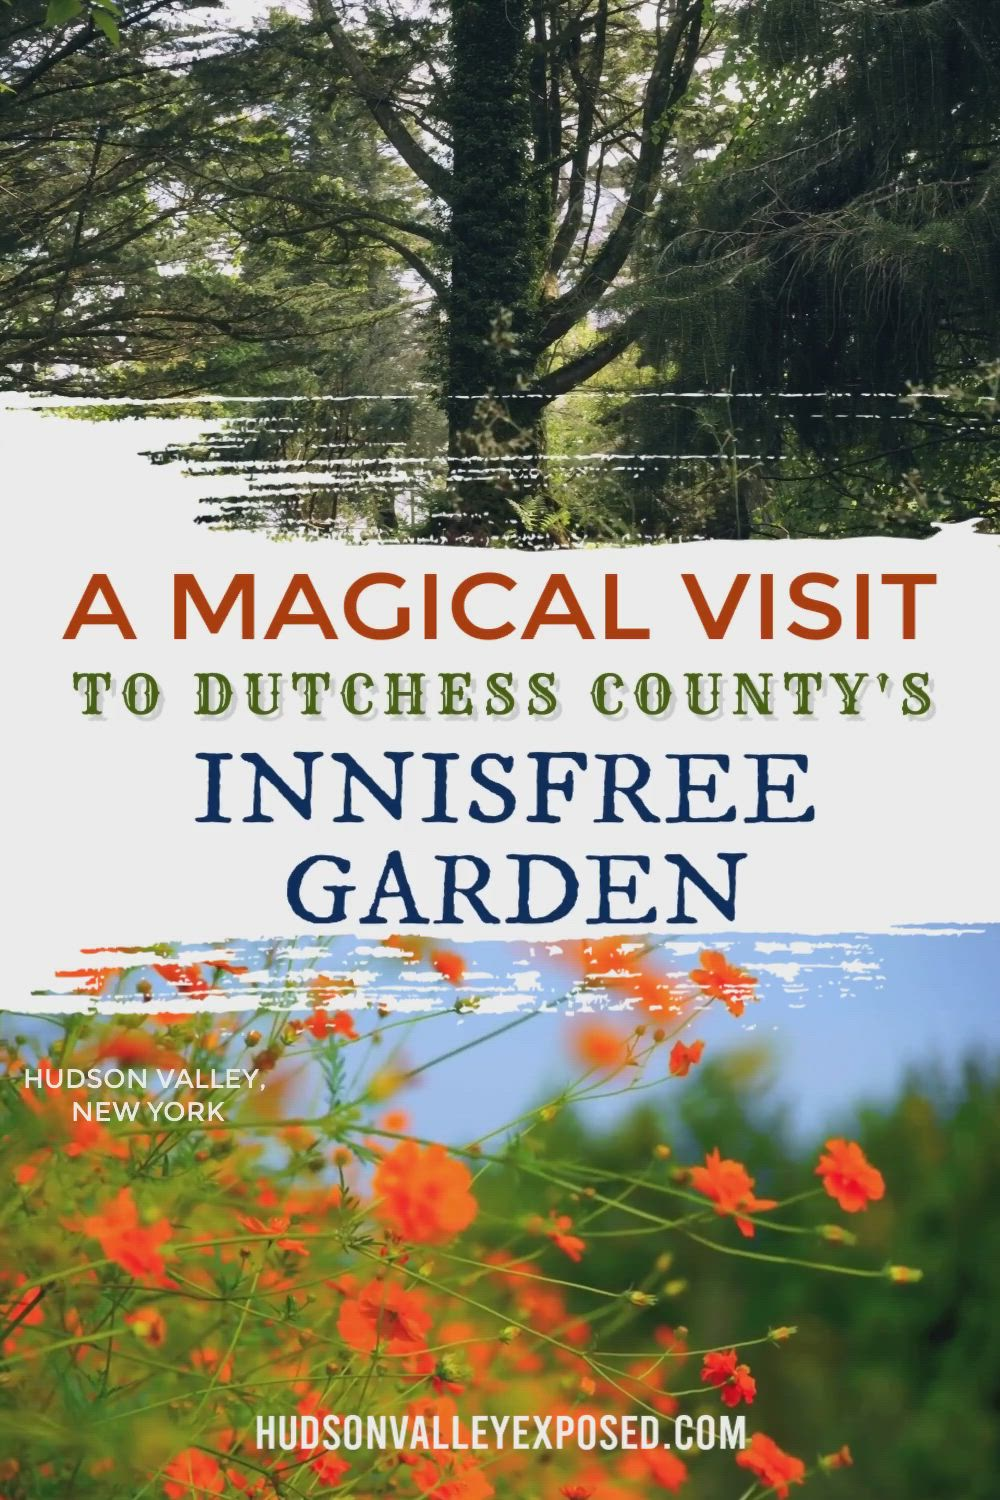 Innisfree Garden An Afternoon At This Popular Millbrook Garden Video Video In 2020 Hudson Valley Travel Day Trip To Nyc York Things To Do